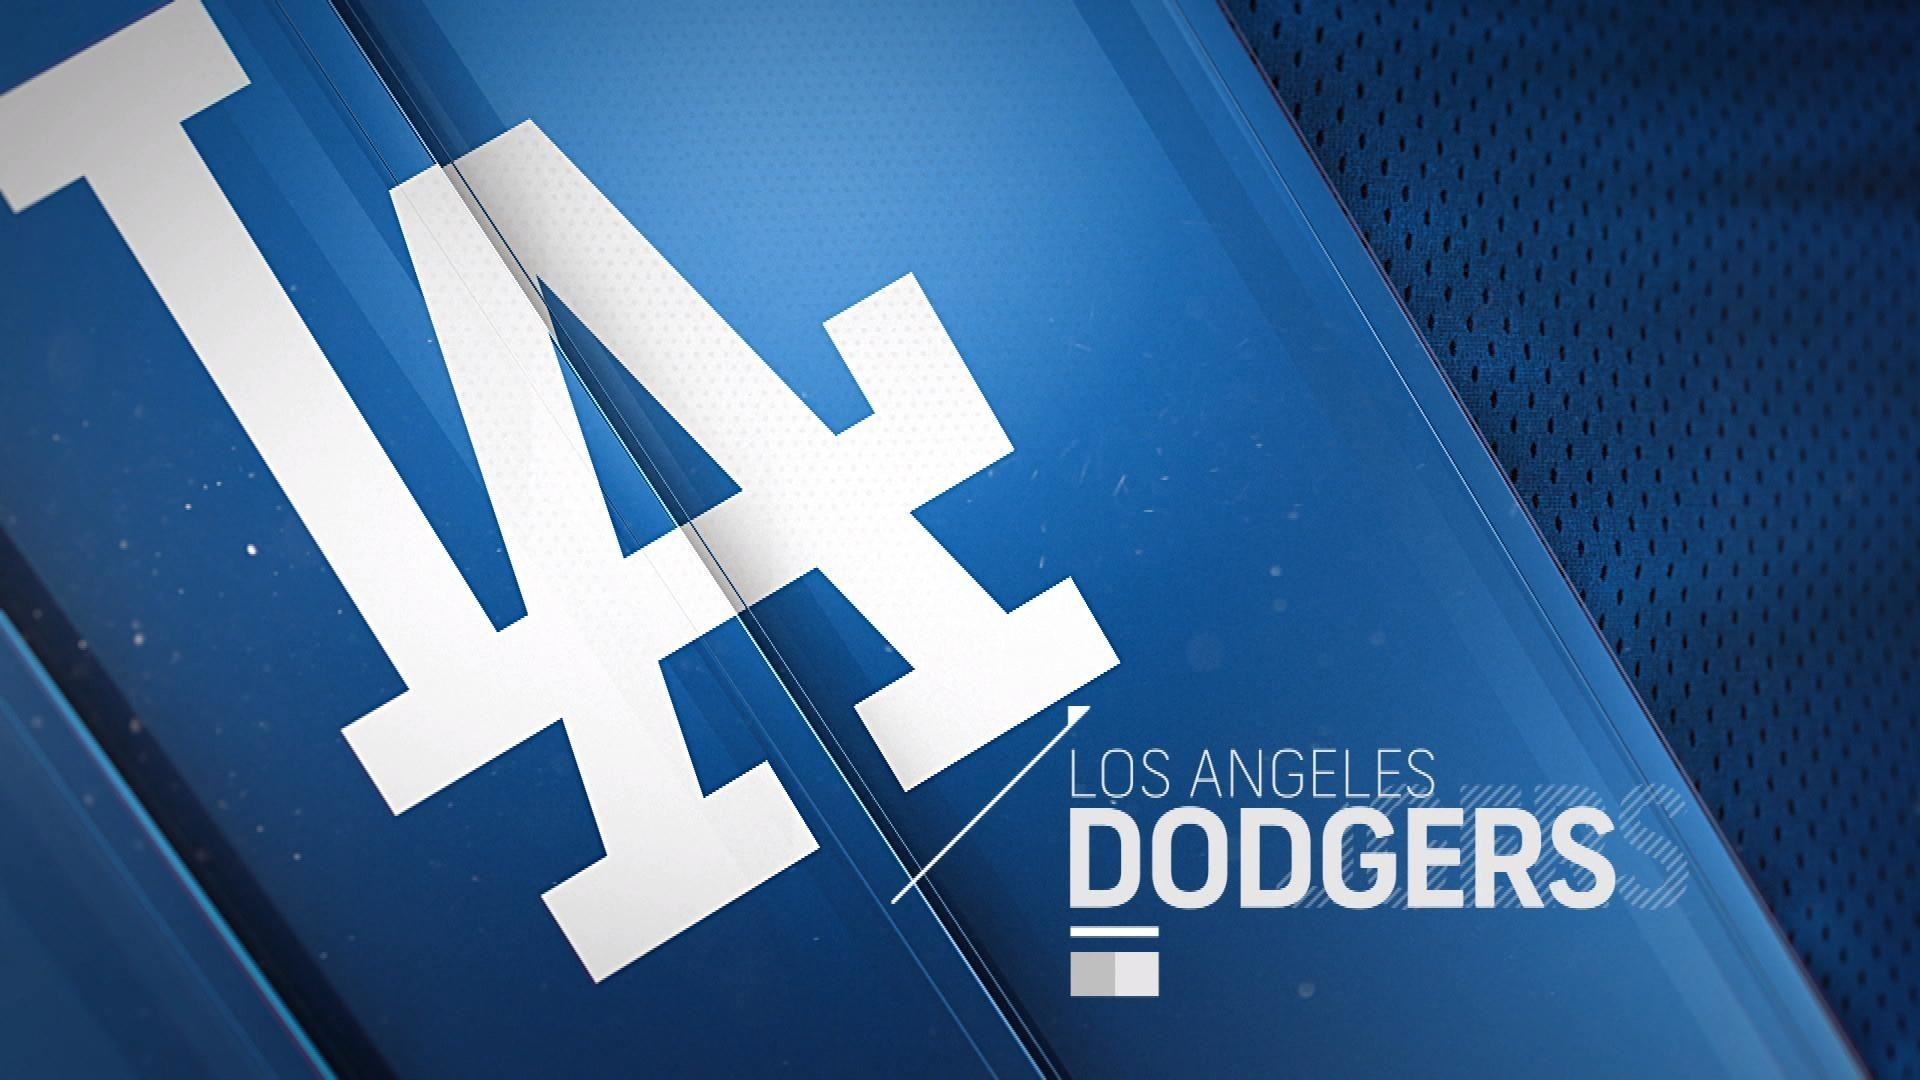 Los Angeles Dodgers Logo Wallpaper Posted By Ryan Anderson